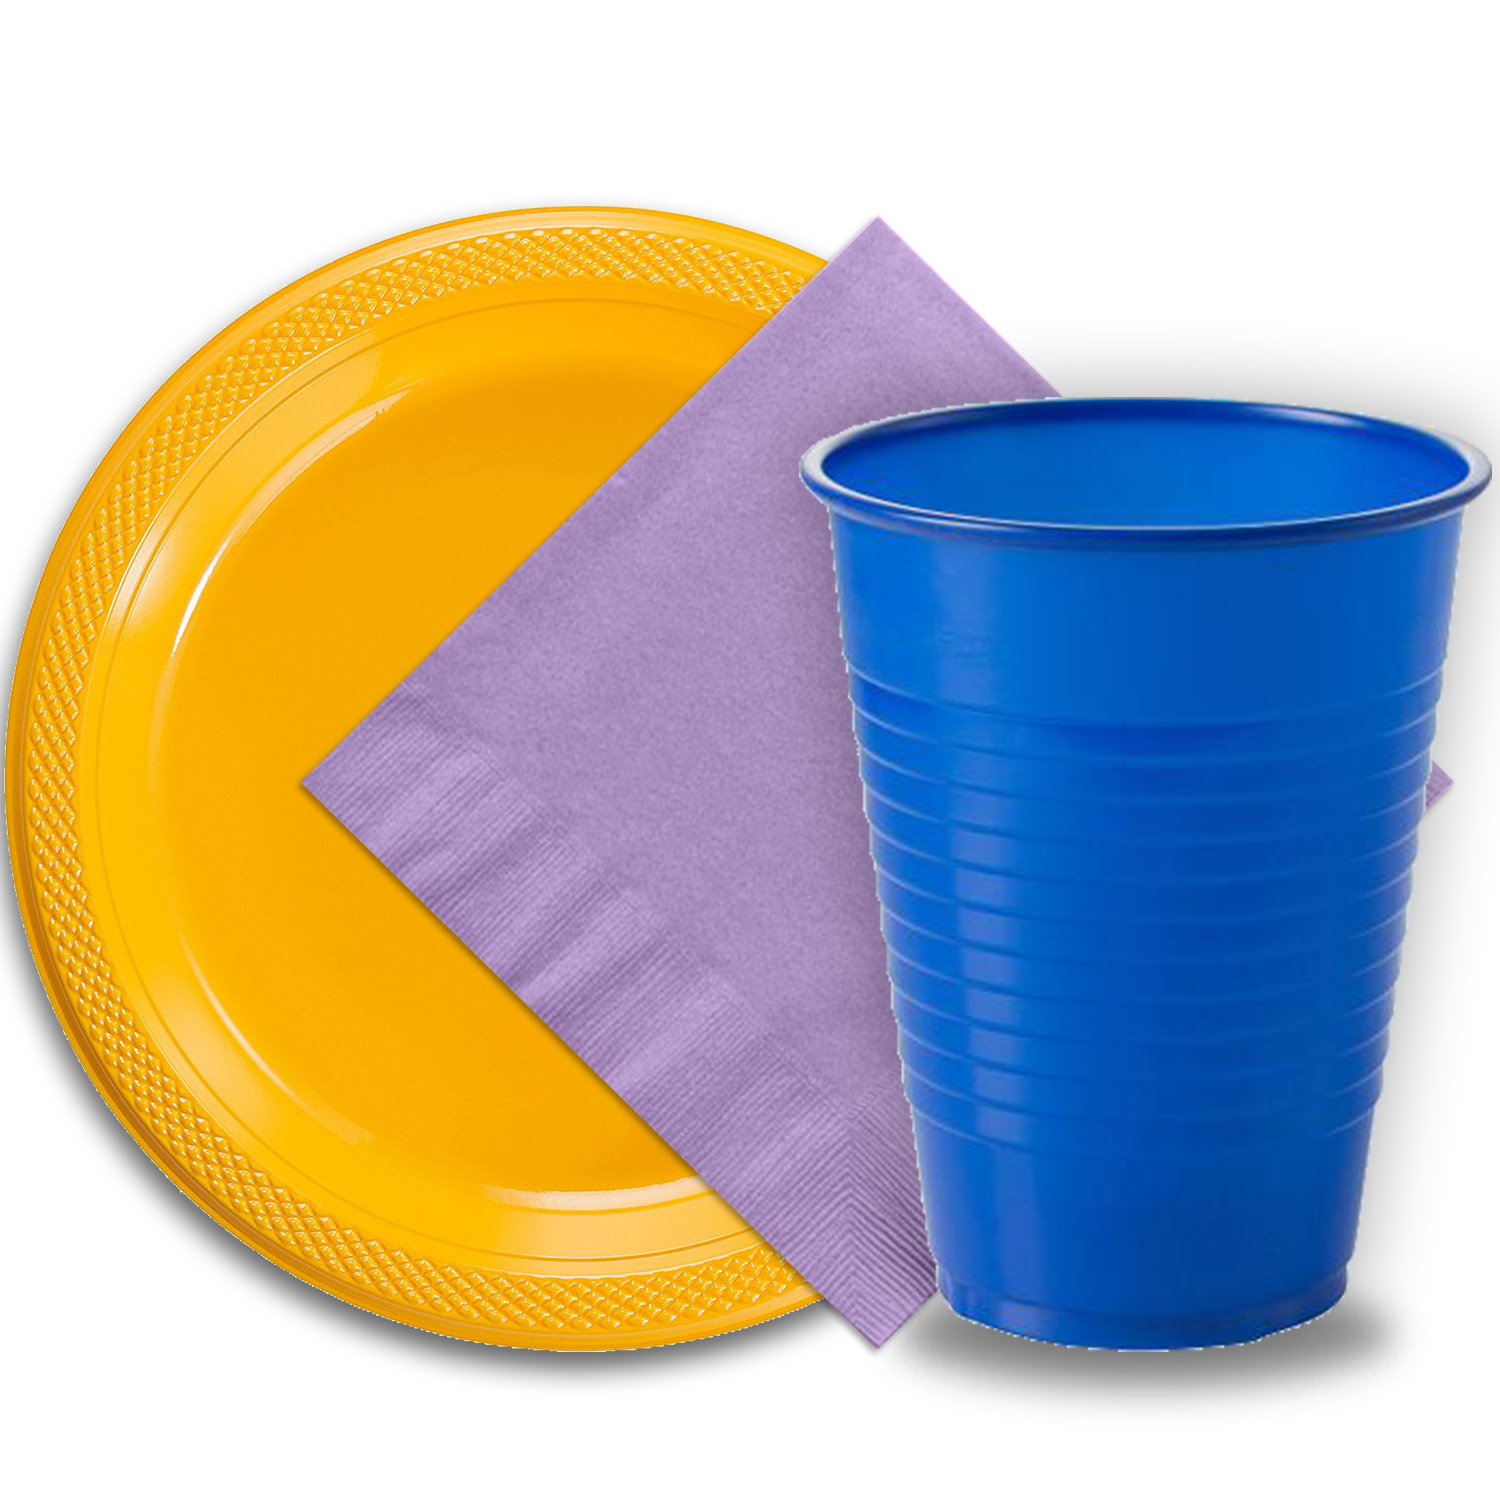 "50 Yellow Plastic Plates (9""), 50 Dark Blue Plastic Cups (12 oz.), and 50 Lavender Paper Napkins, Dazzelling Colored Disposable Party Supplies Tableware Set for Fifty Guests."